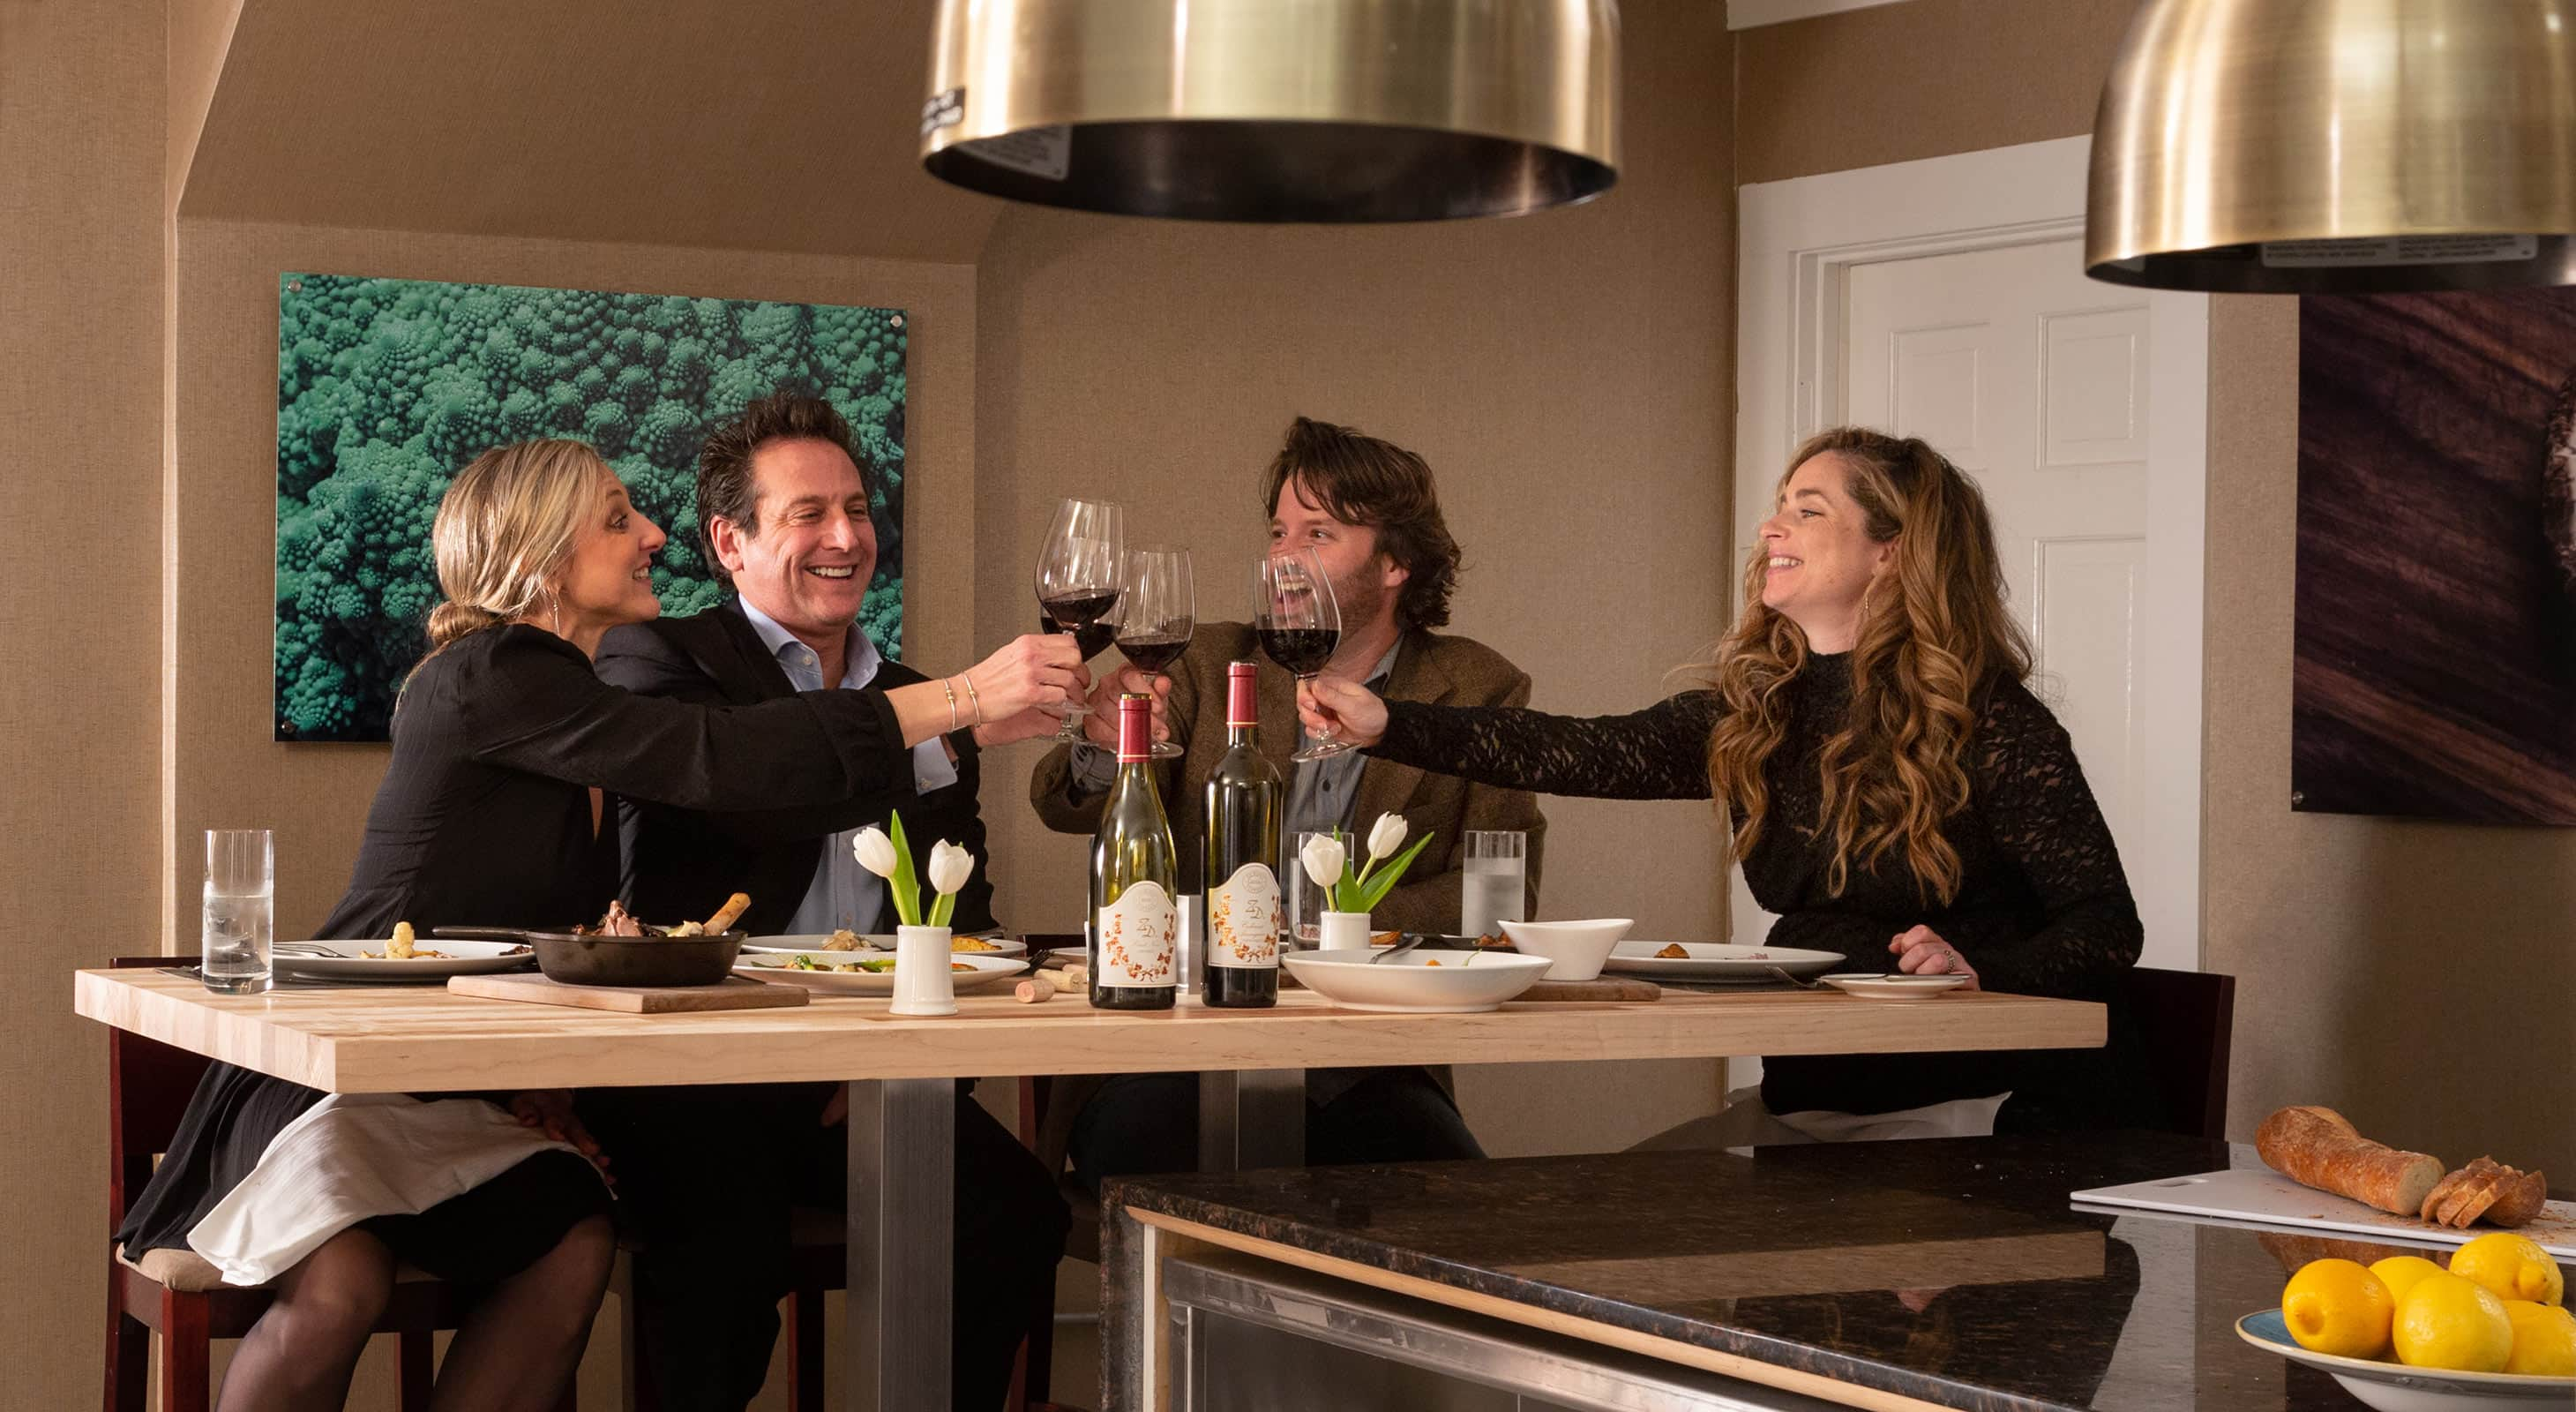 Friends Toasting at the Chef's Table